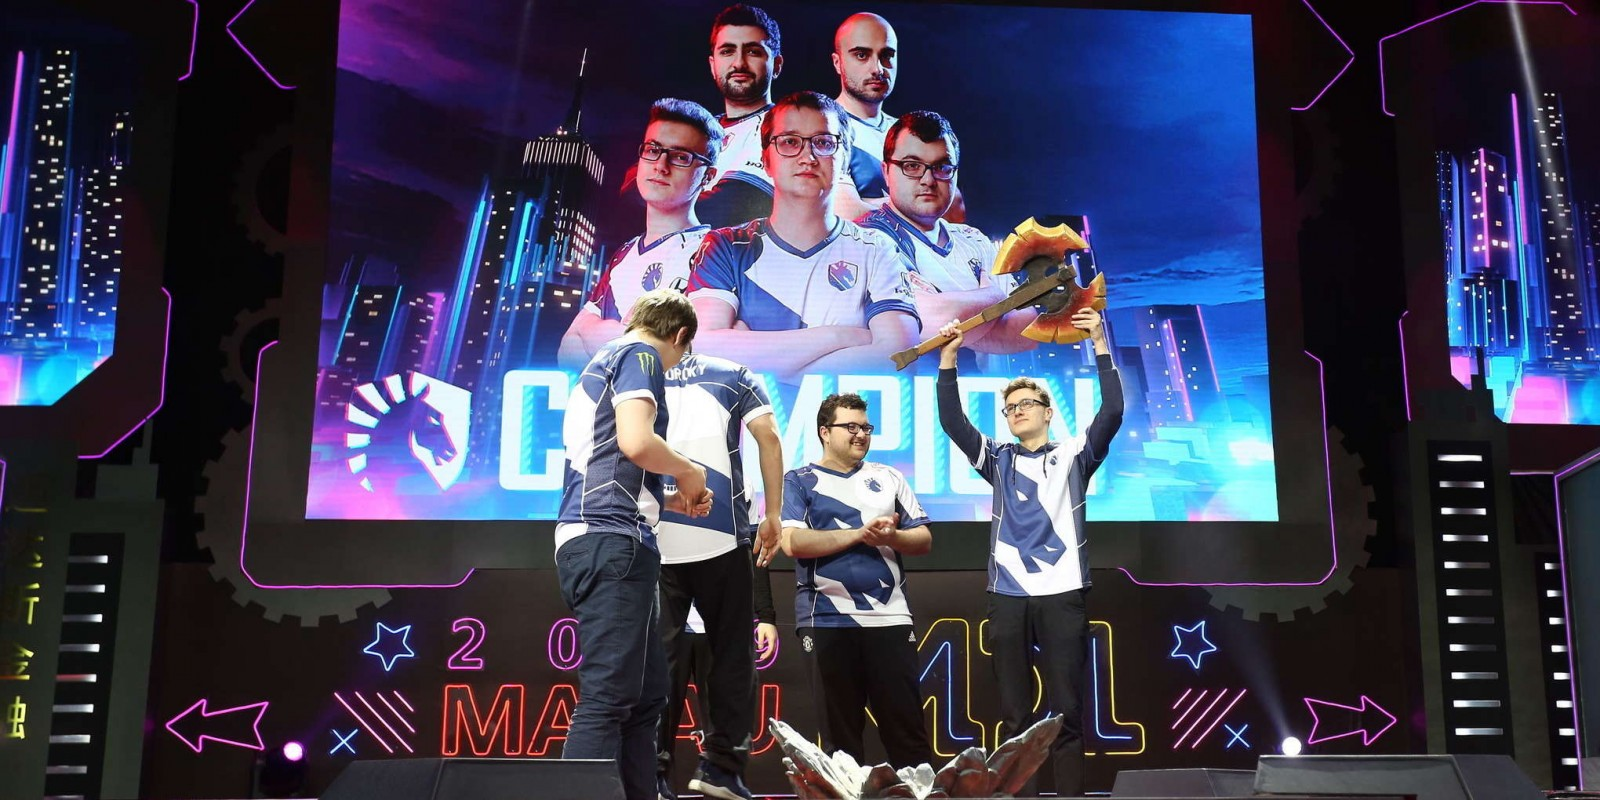 Photos of Team Liquid's Dota 2 team who won the MDL Macau event.